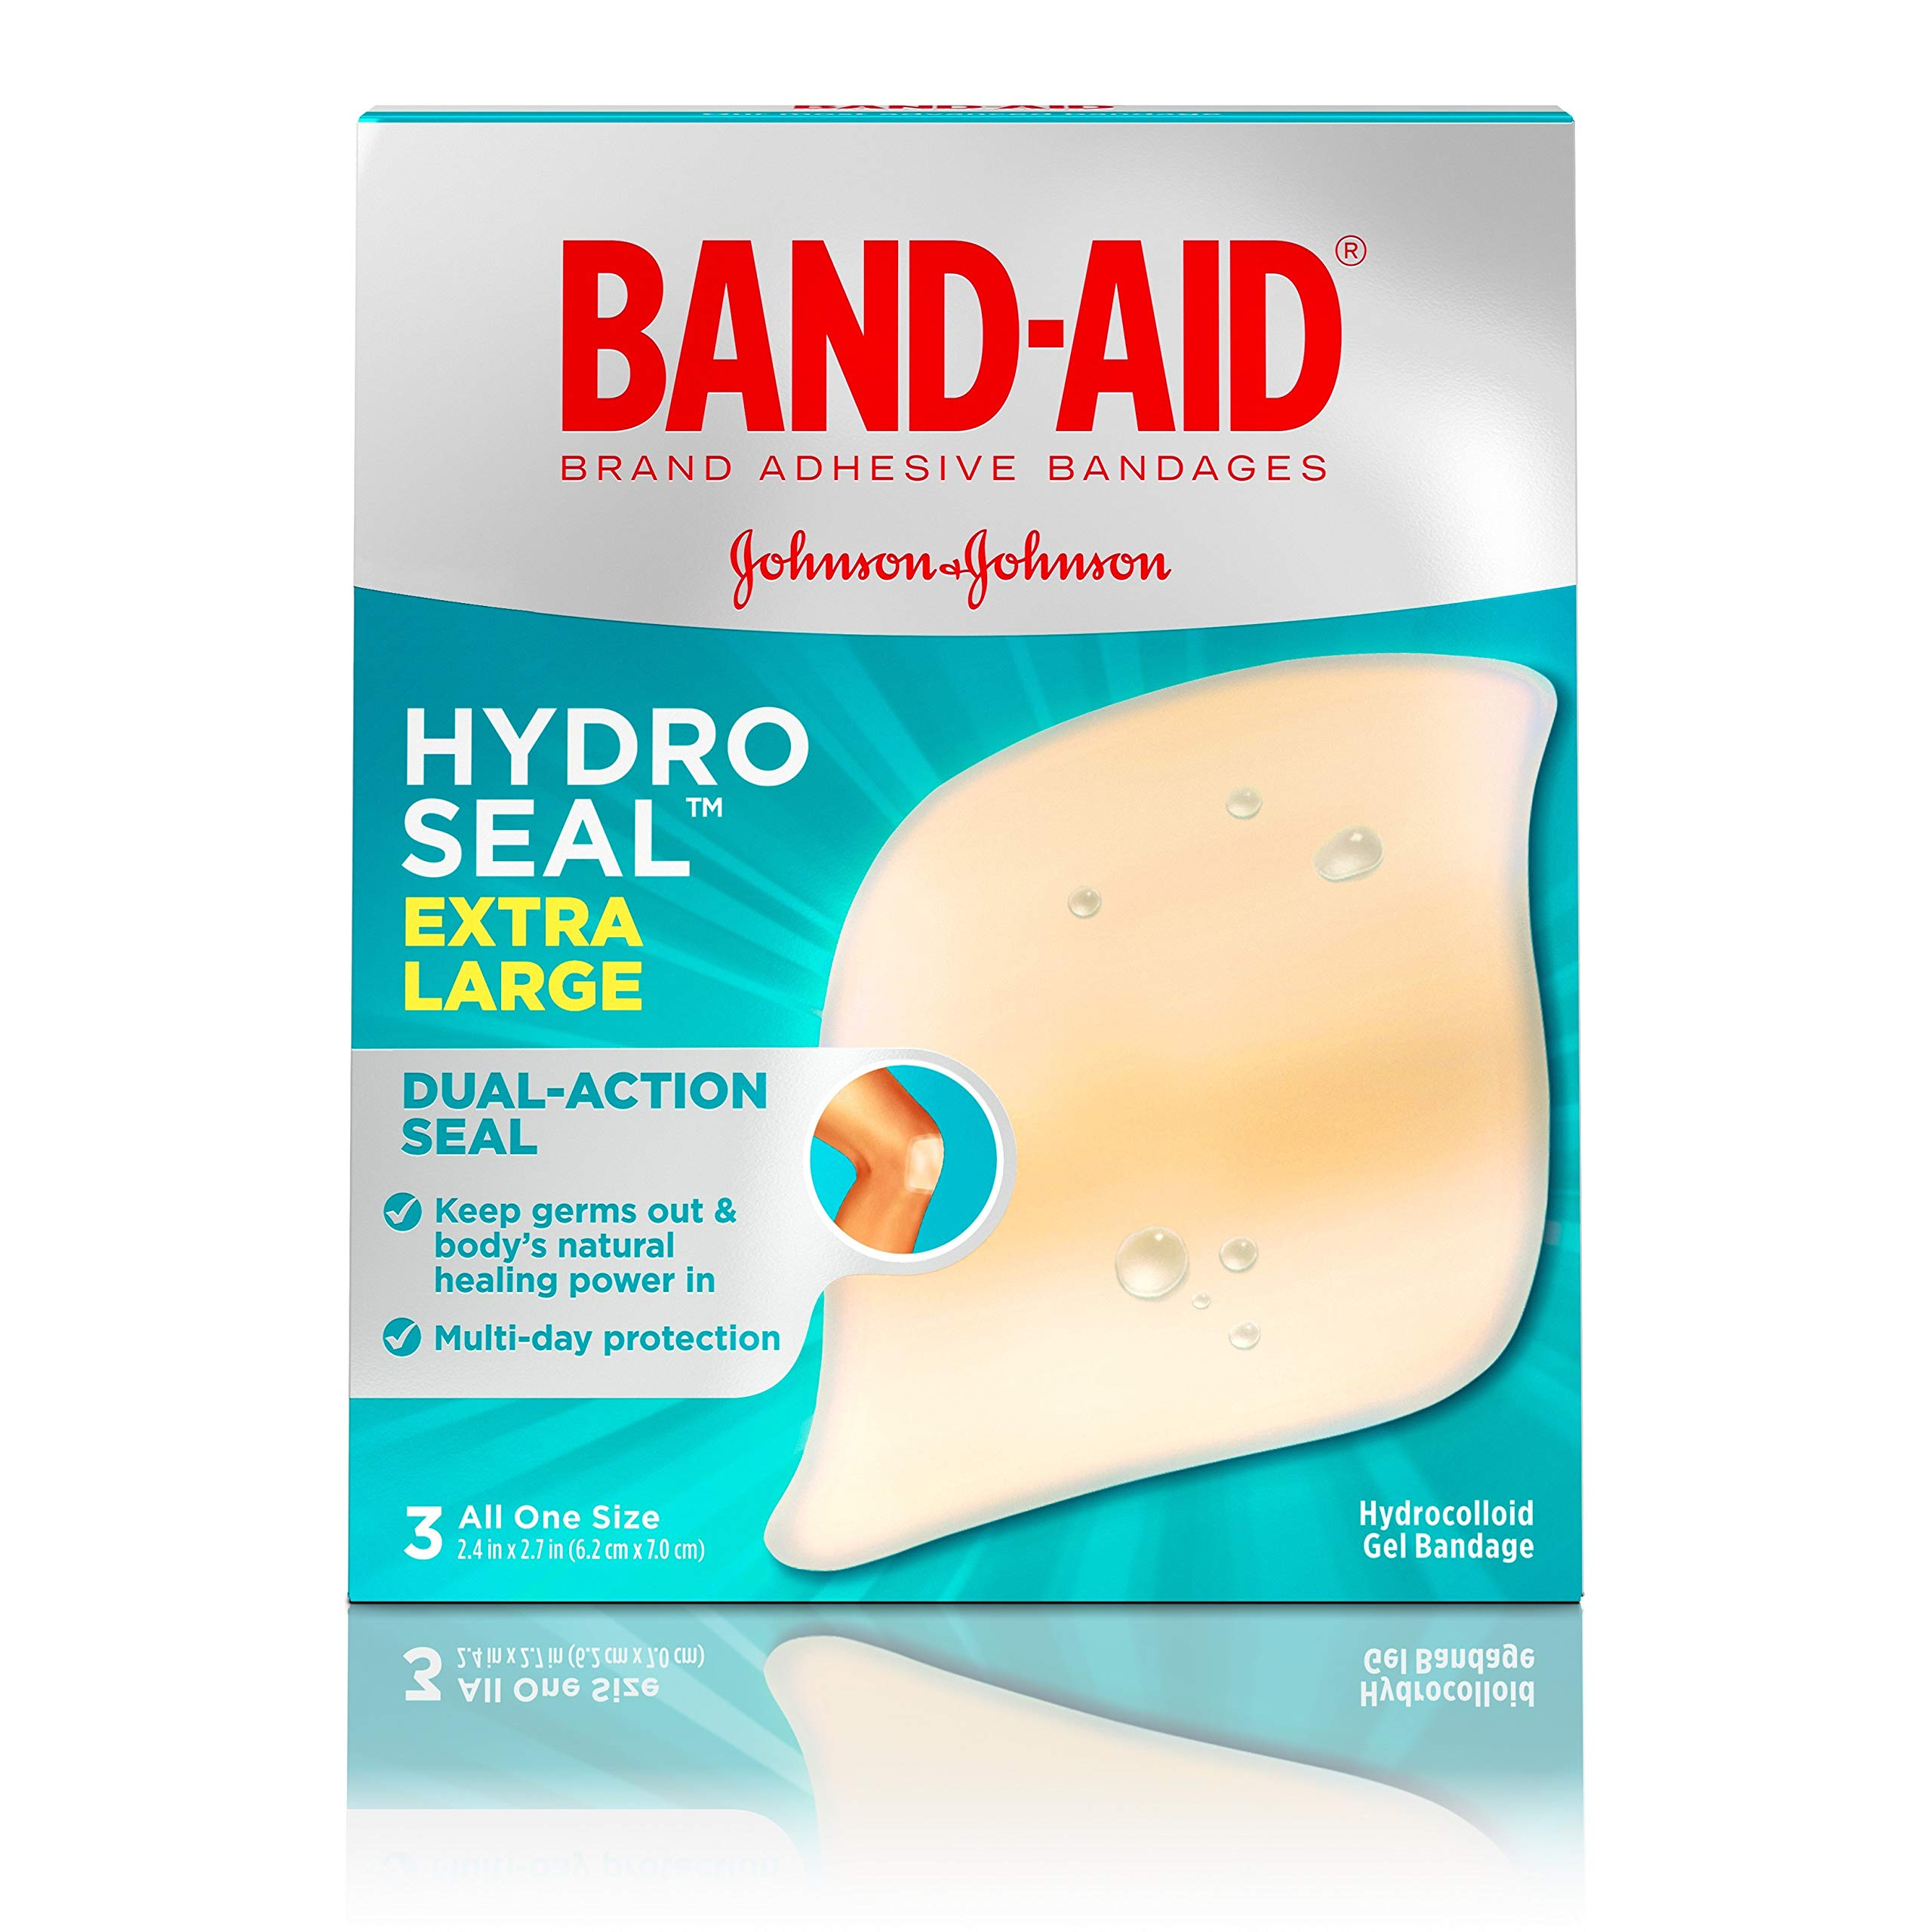 Band-Aid Brand Hydro Seal Extra Large Adhesive Bandages for Wound Care & Blisters, All Purpose Waterproof Blister Pad & Hydrocolloid Gel Bandages, Sterile & Long-Lasting, 3 ct